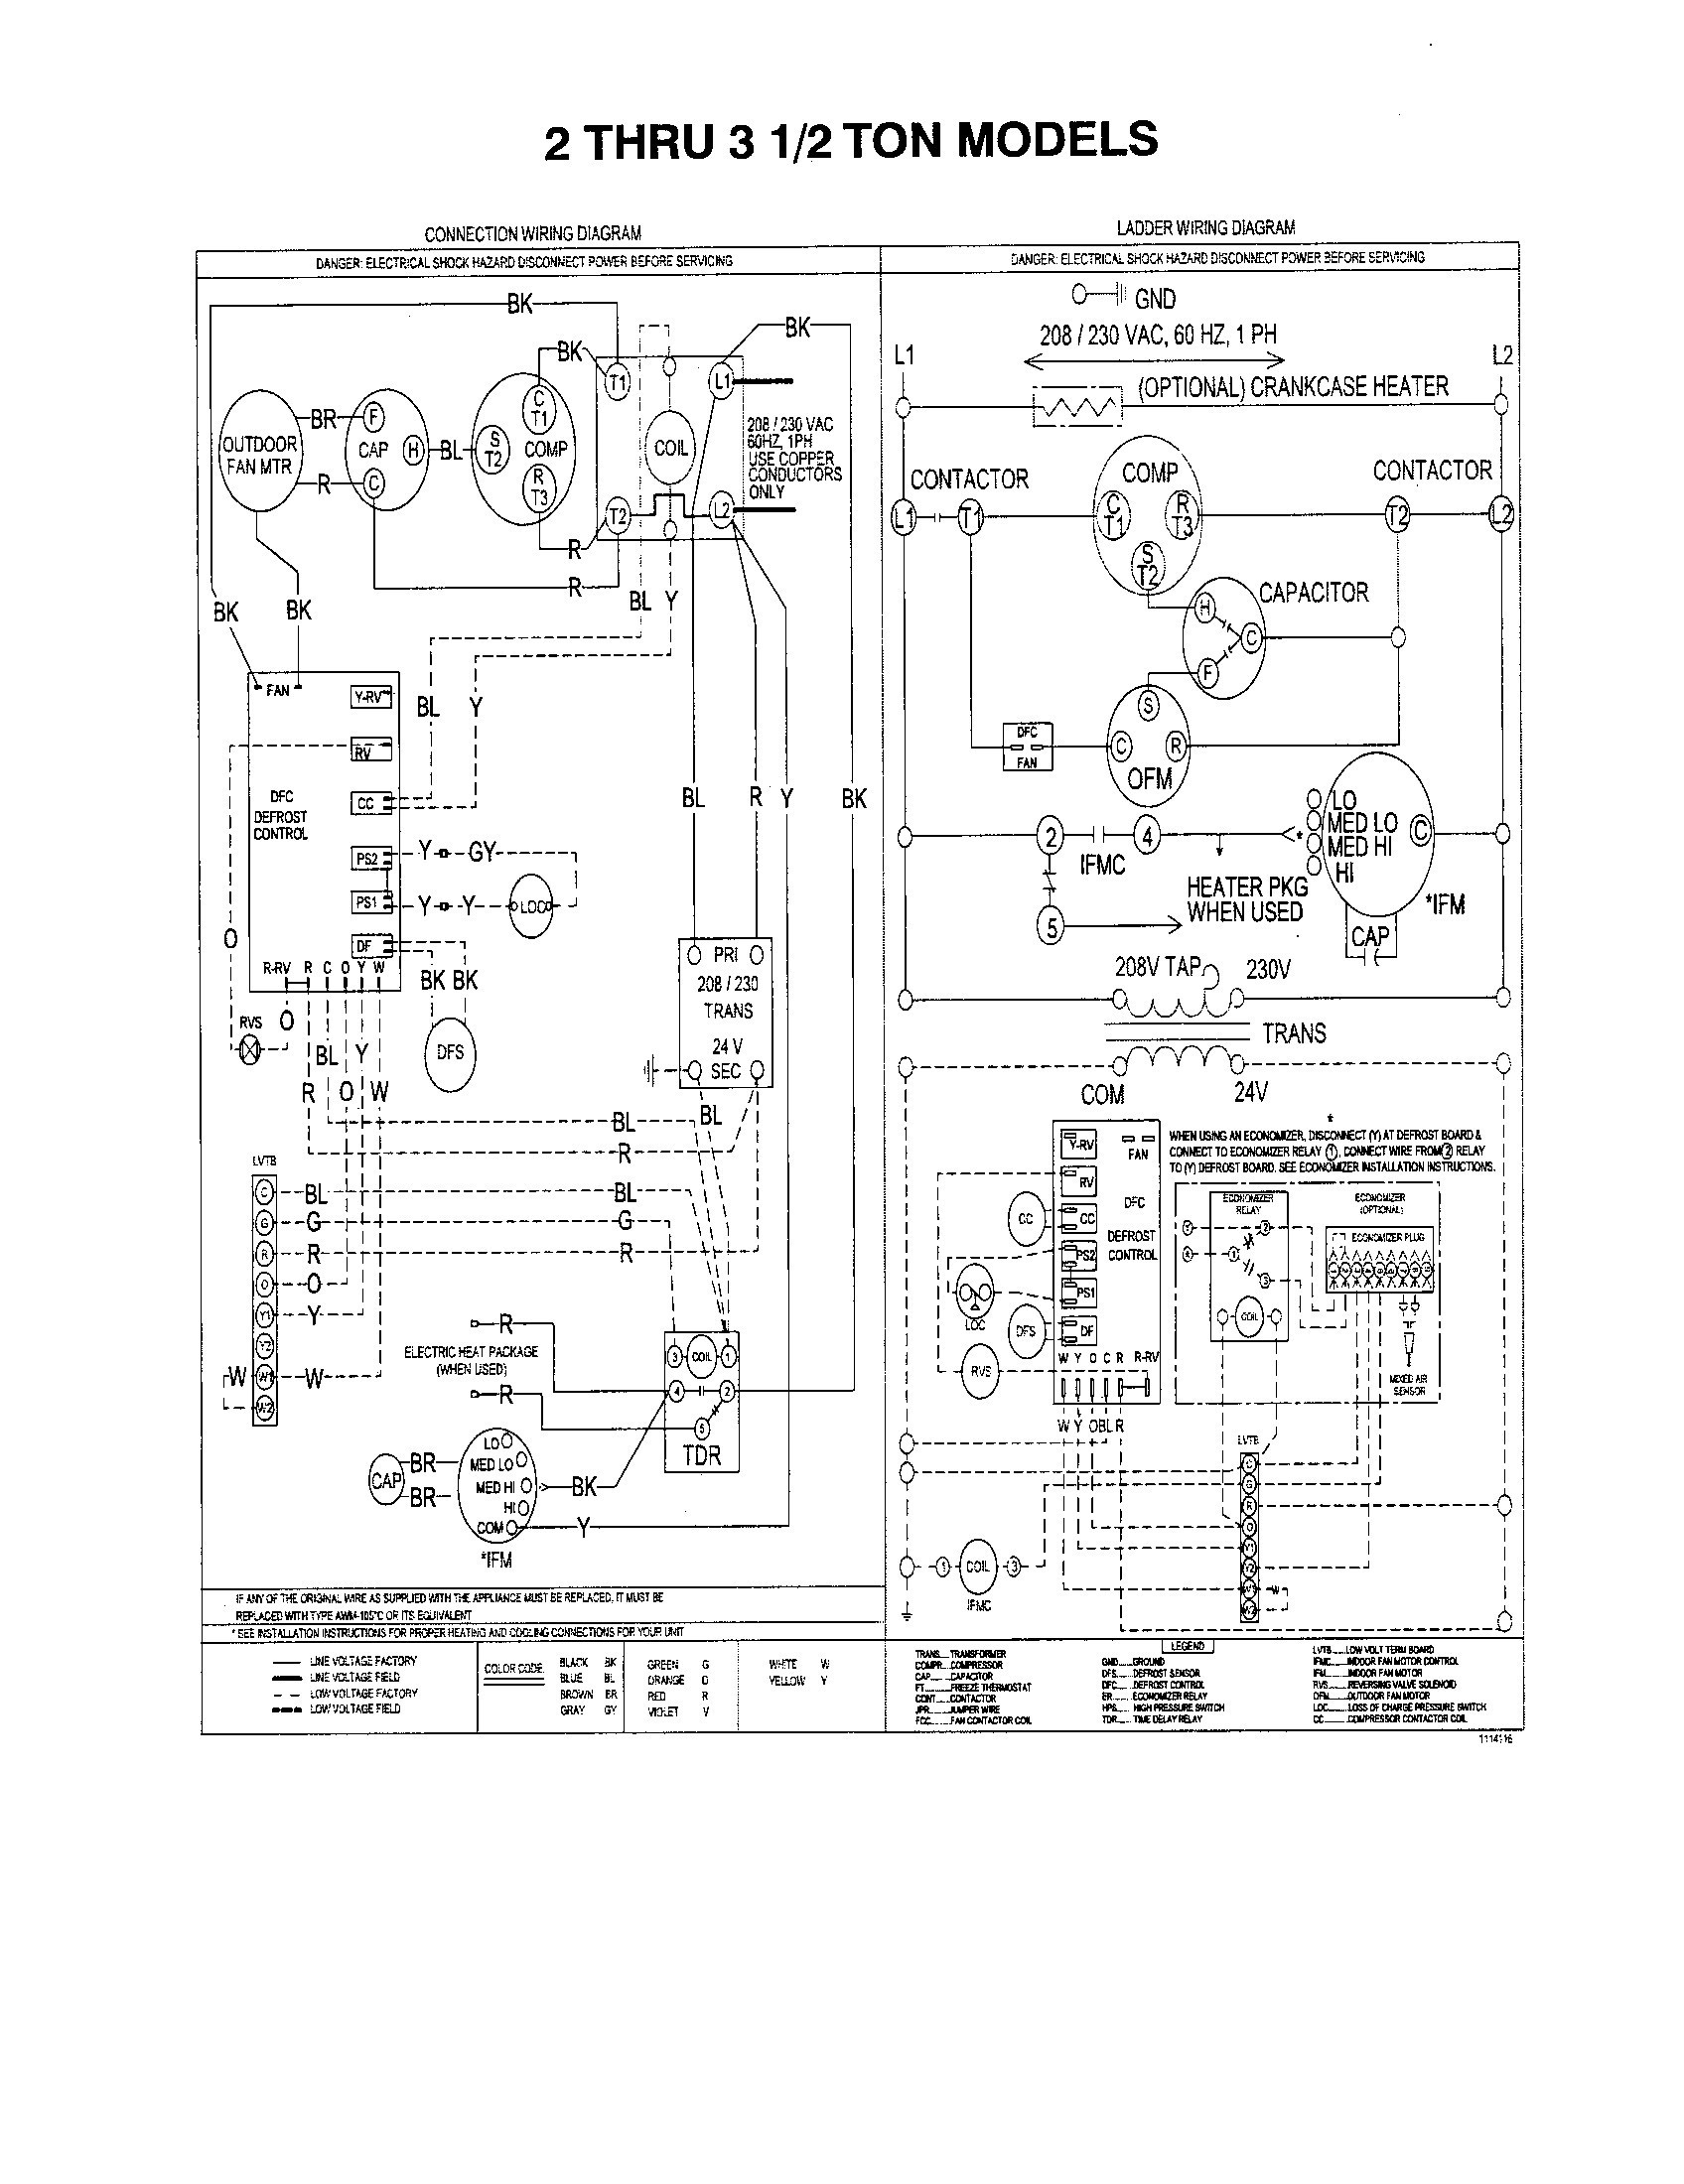 related with trane wiring schematics for package units